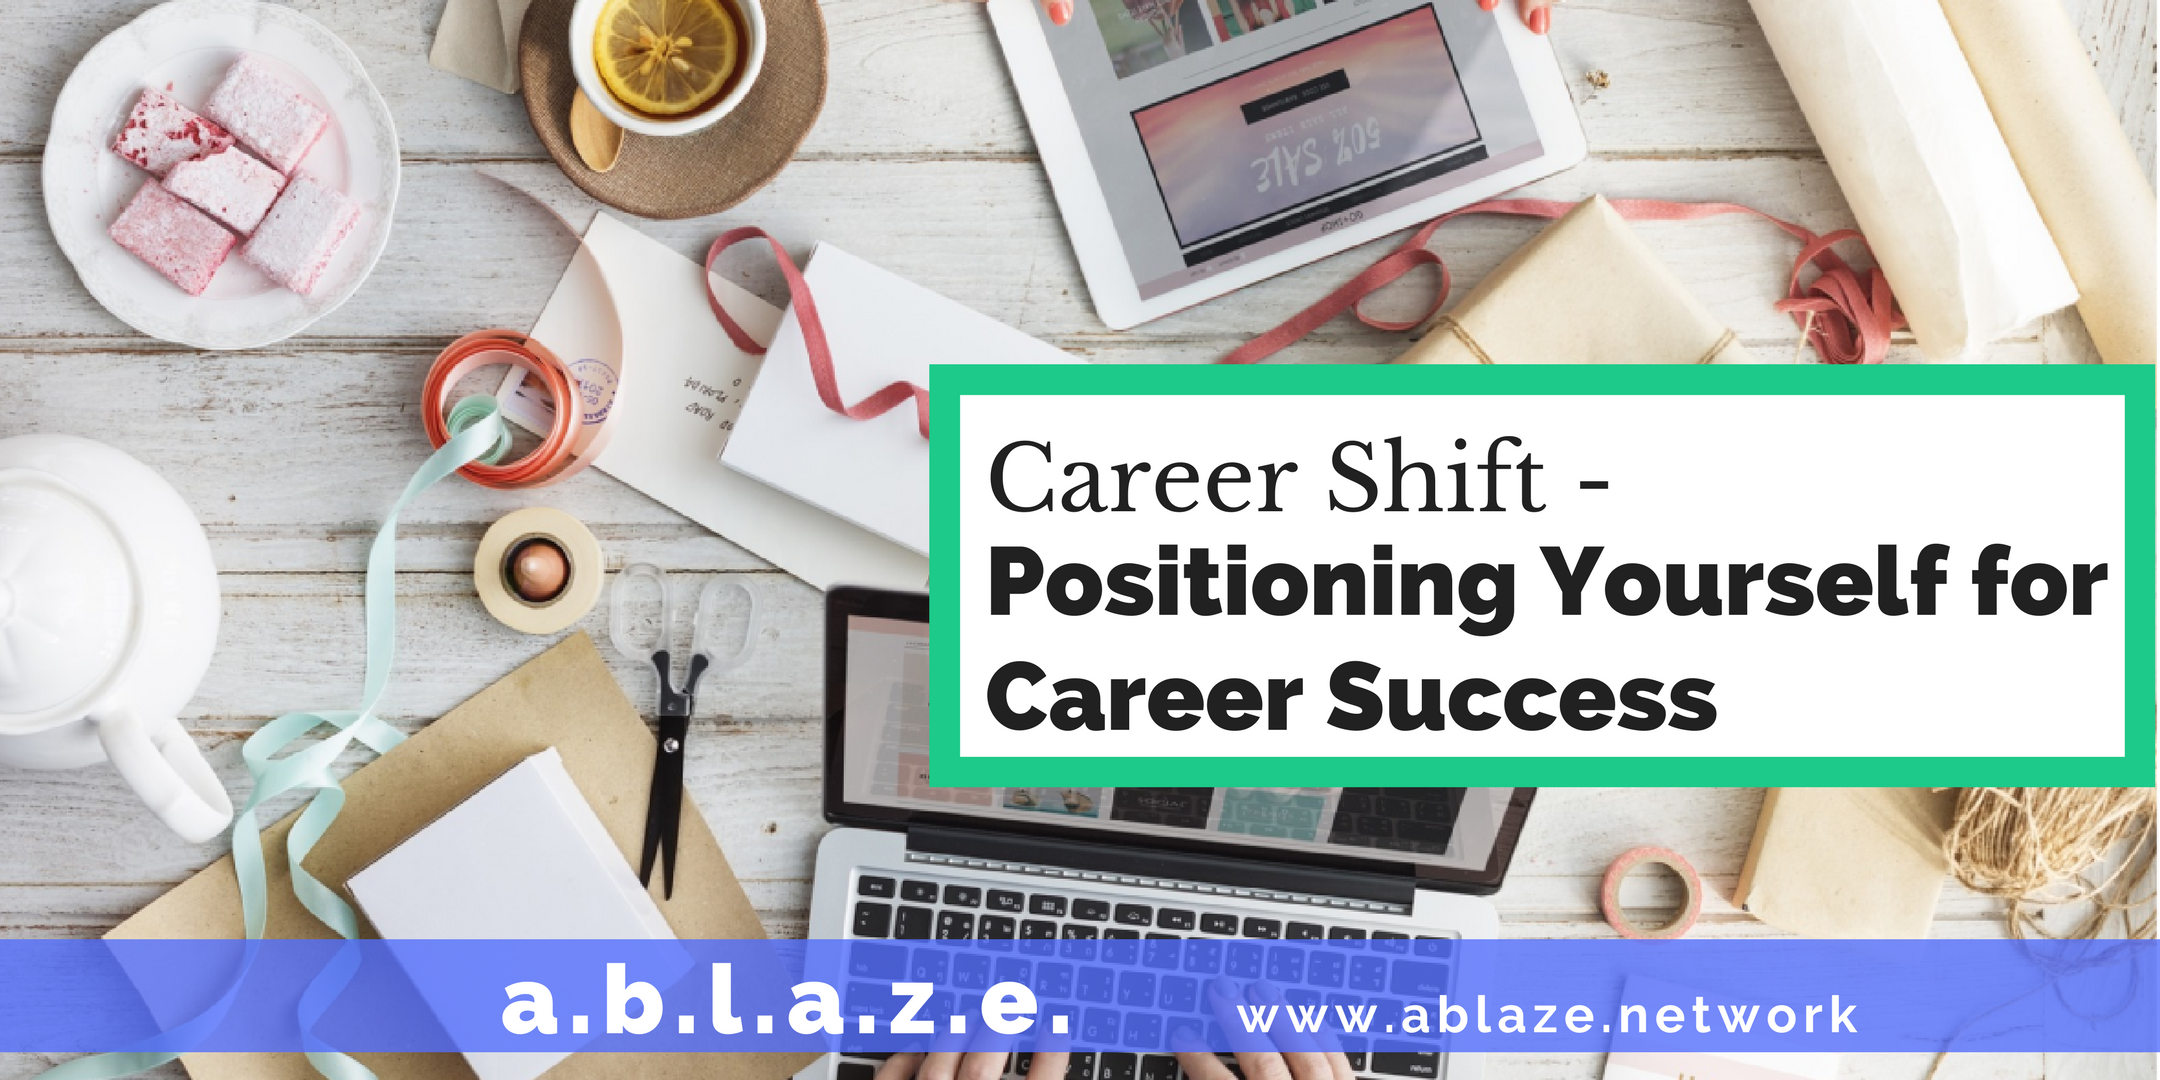 Career Shift - Positioning Yourself for Succe